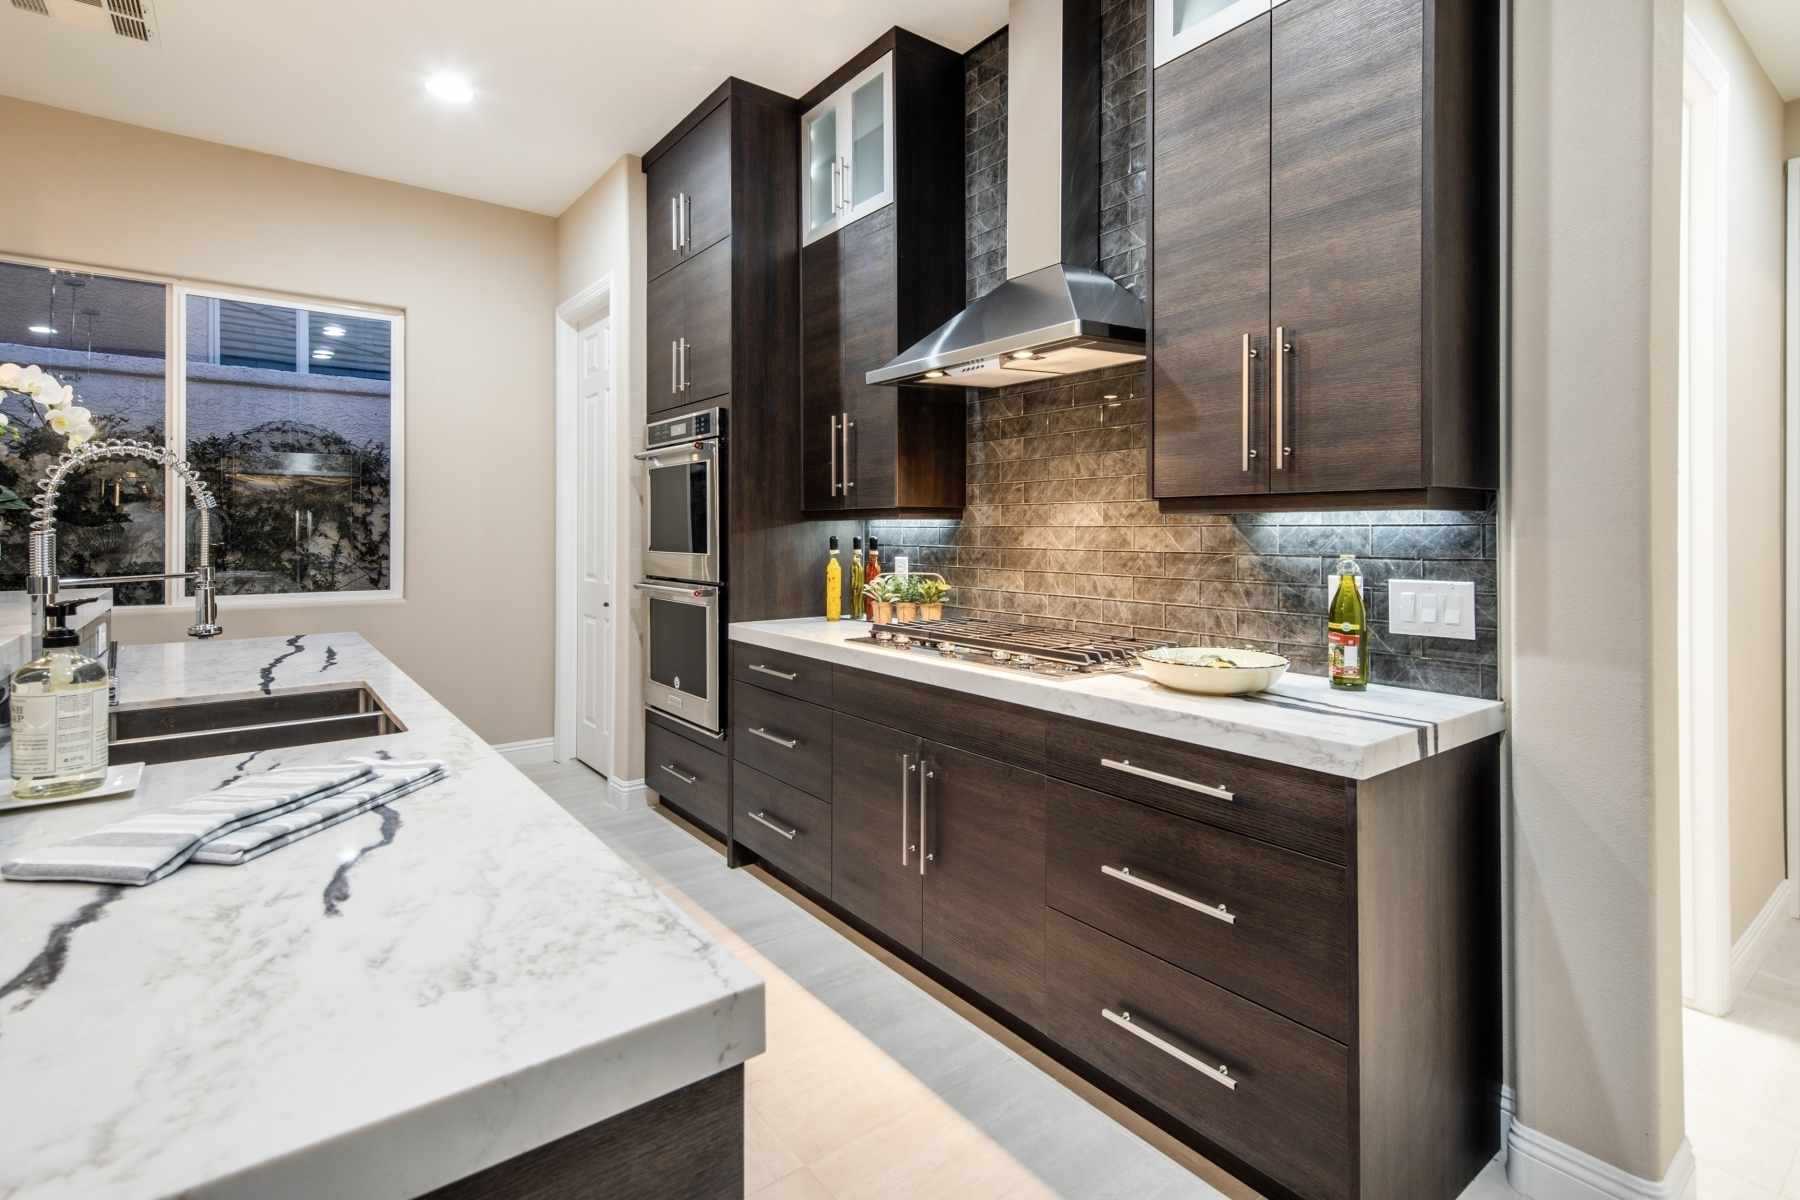 Kitchen Remodels Photo Gallery - Southern Vegas Valley Contracting